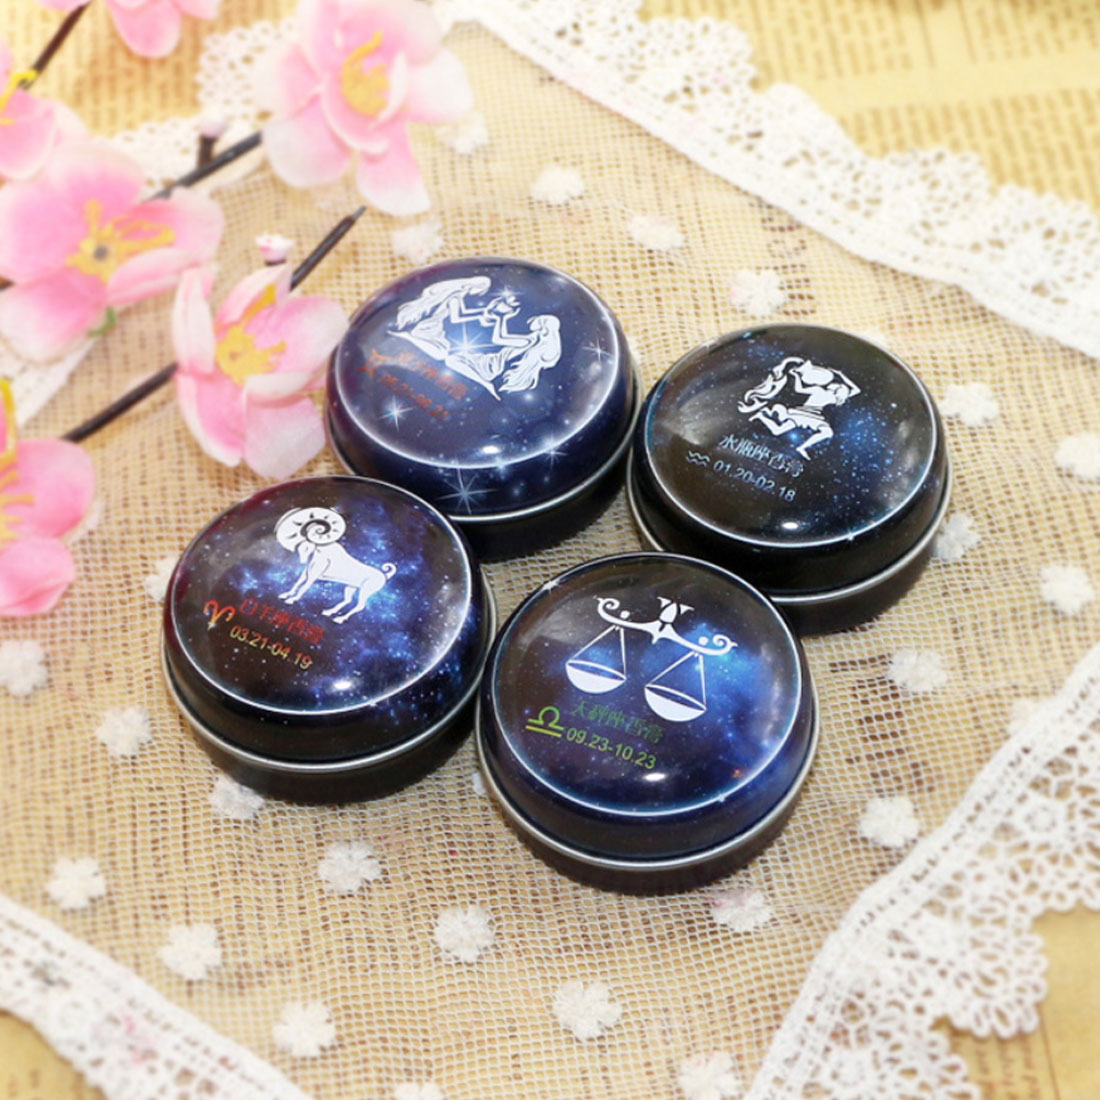 NEW Arrival 1 PC Unisex Magic Zodiac Fragrance 12 Signs Constellation Deodorant Perfumed Solid Portable Tin Box Balm